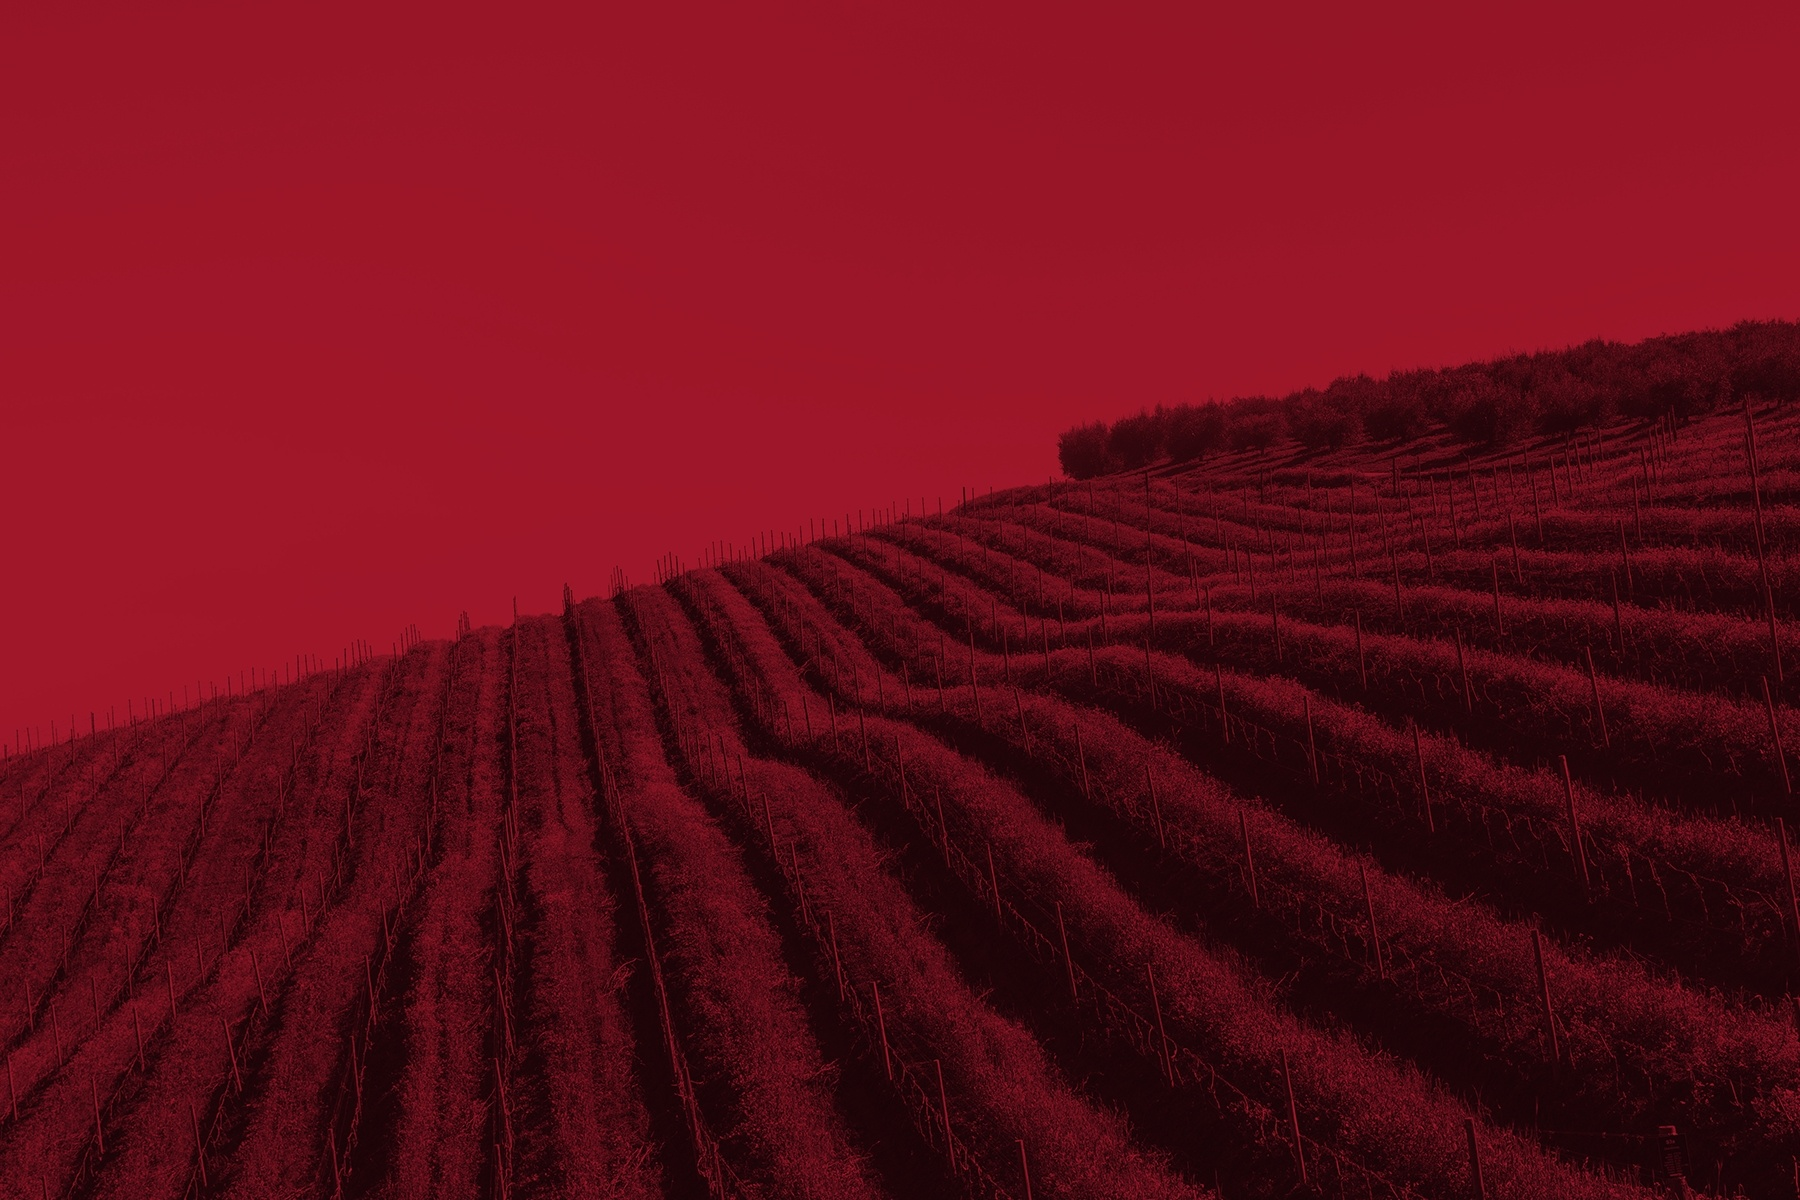 rows of grape vines on a rolling hillside with red image overlay